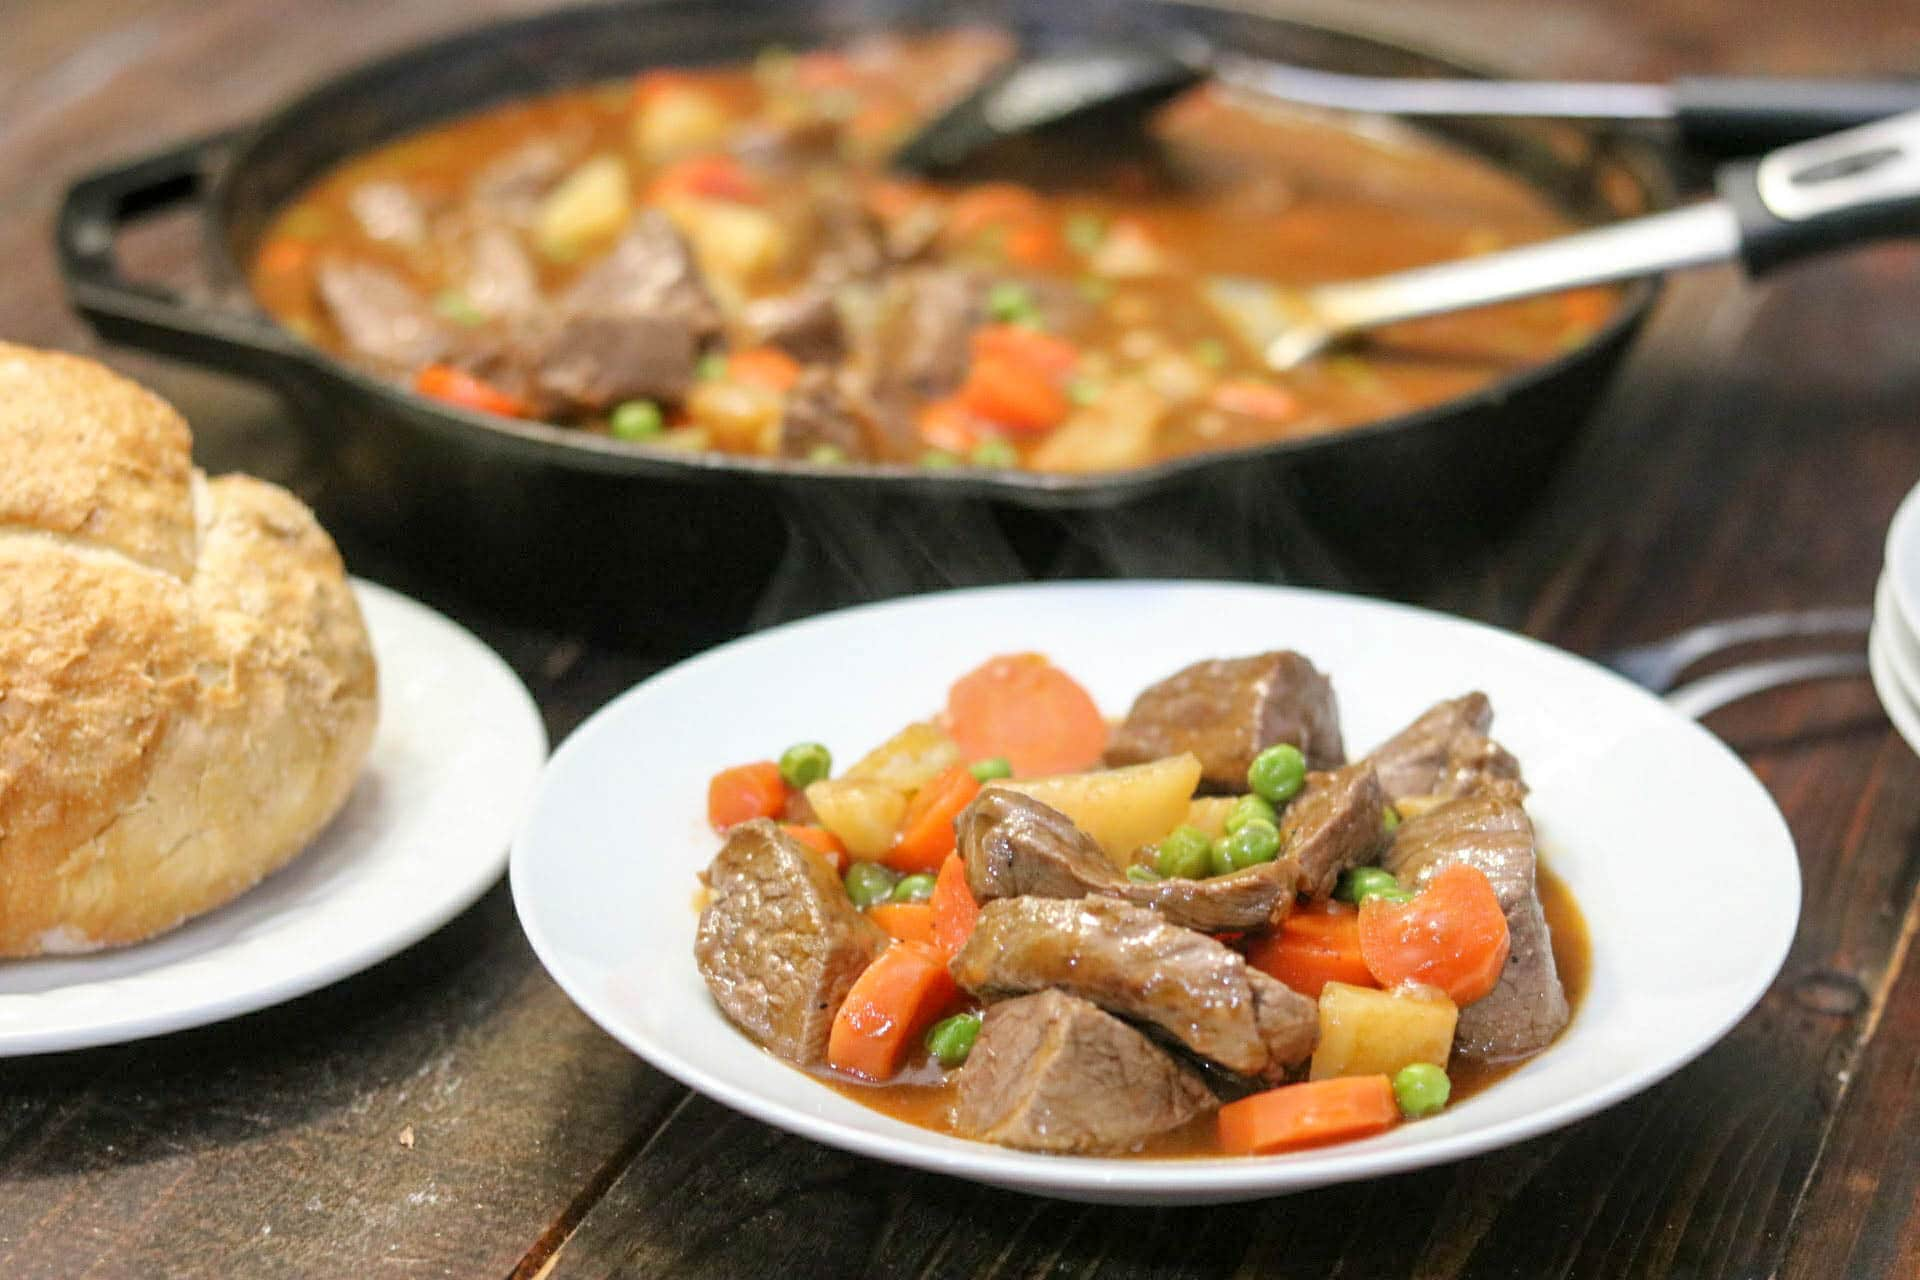 Beef and Guinness stew in white bowl with roll on white plate and remaining stew in cast iron skillet in background on wood table.